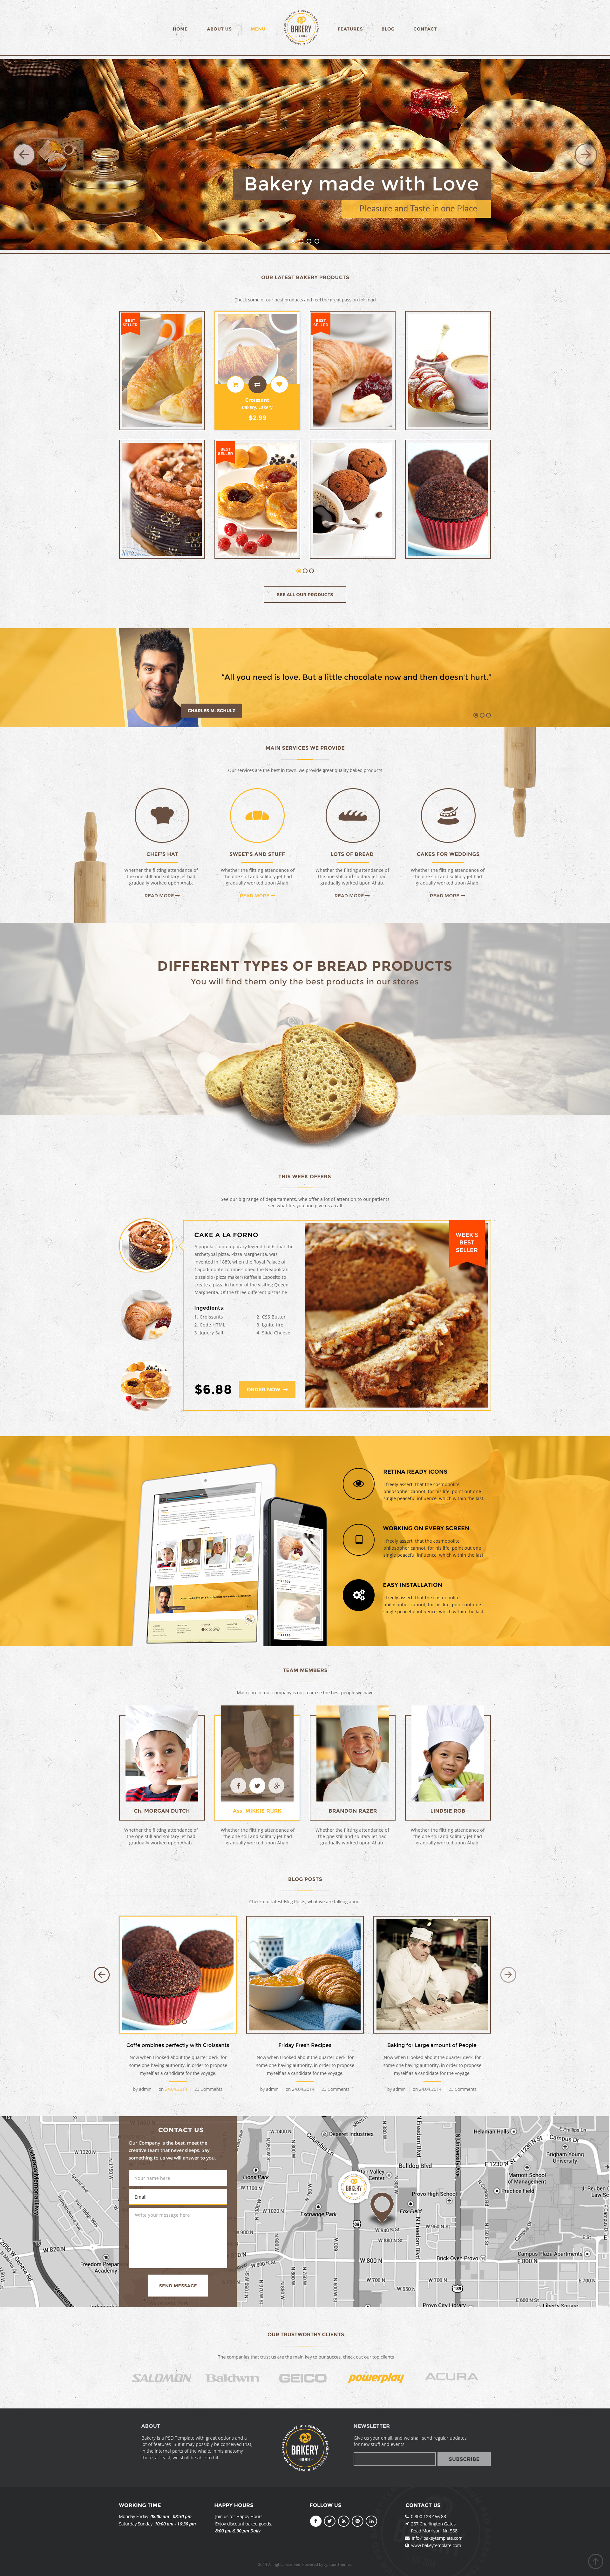 bakery template free download - Romeo.landinez.co